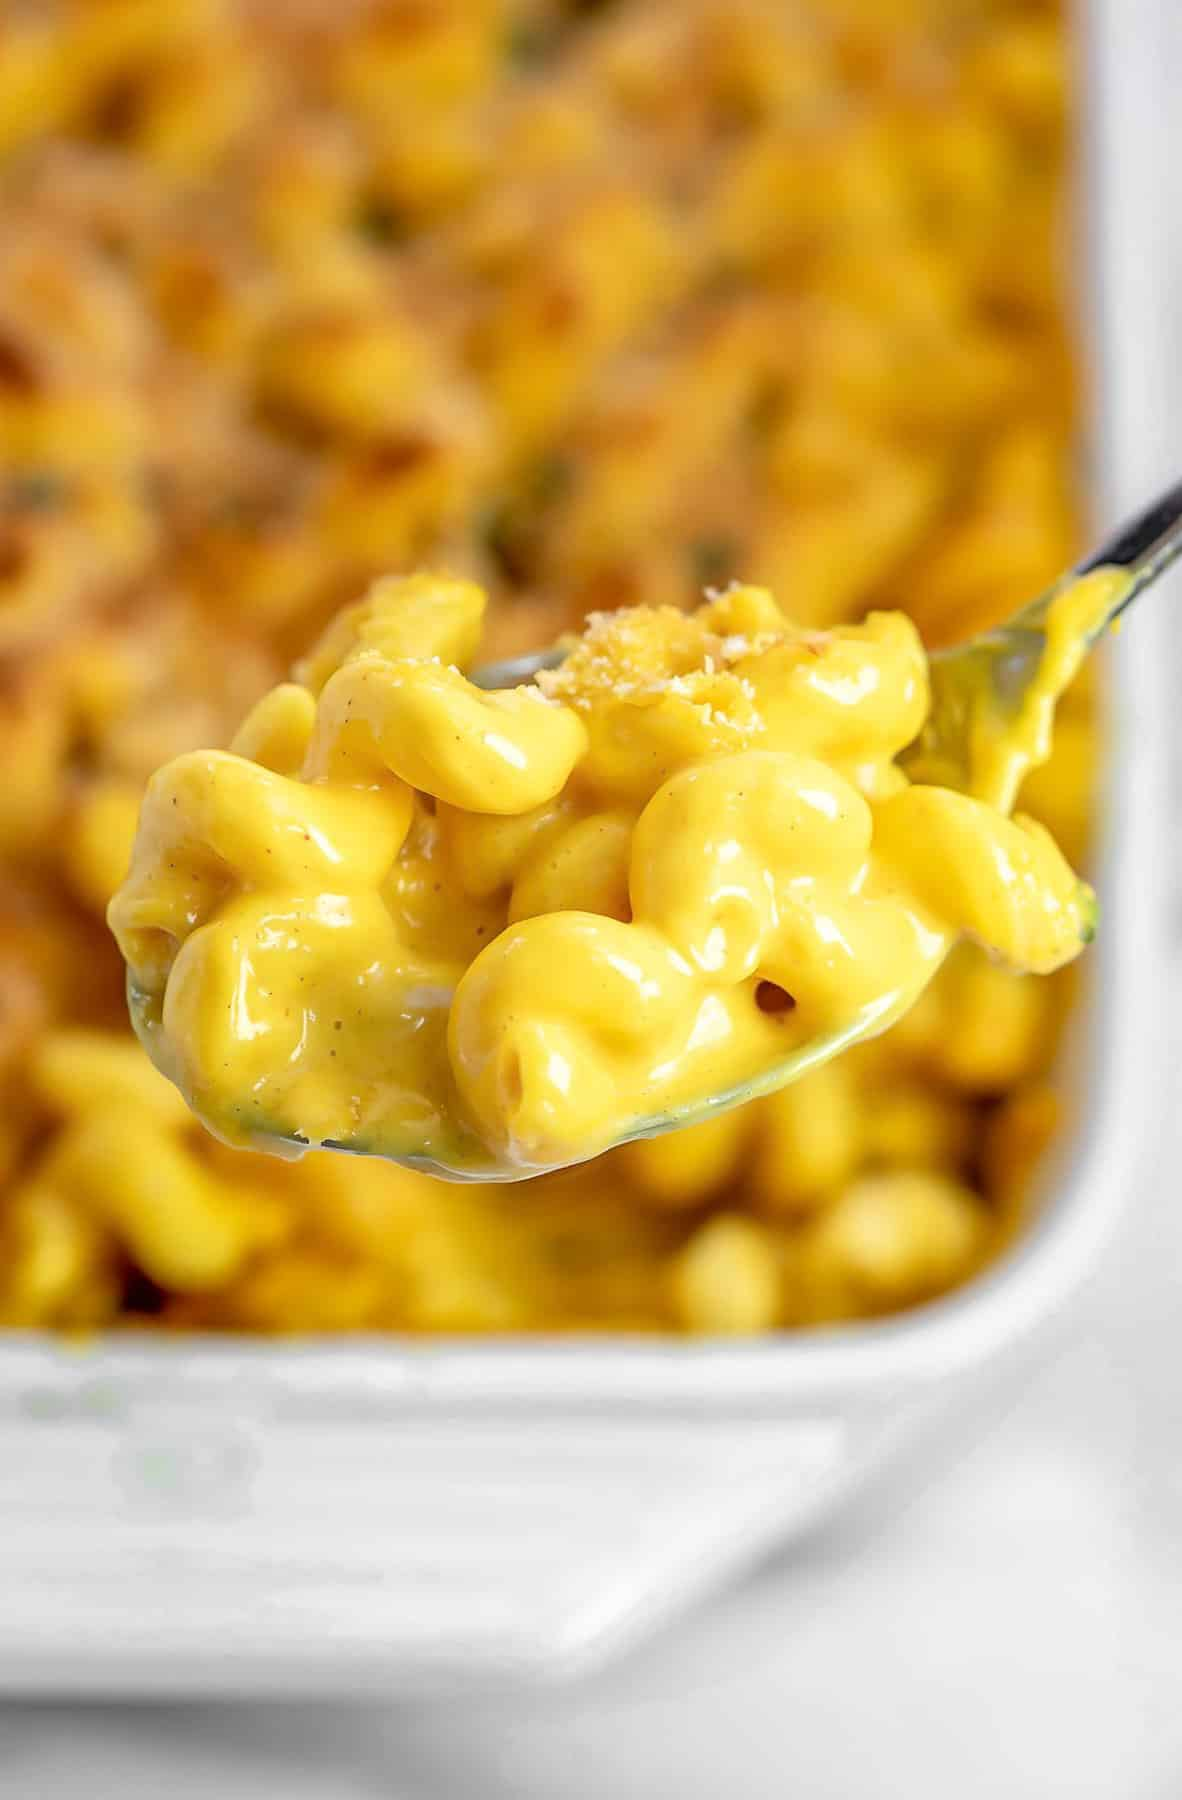 Spoon with the baked vegan mac and cheese